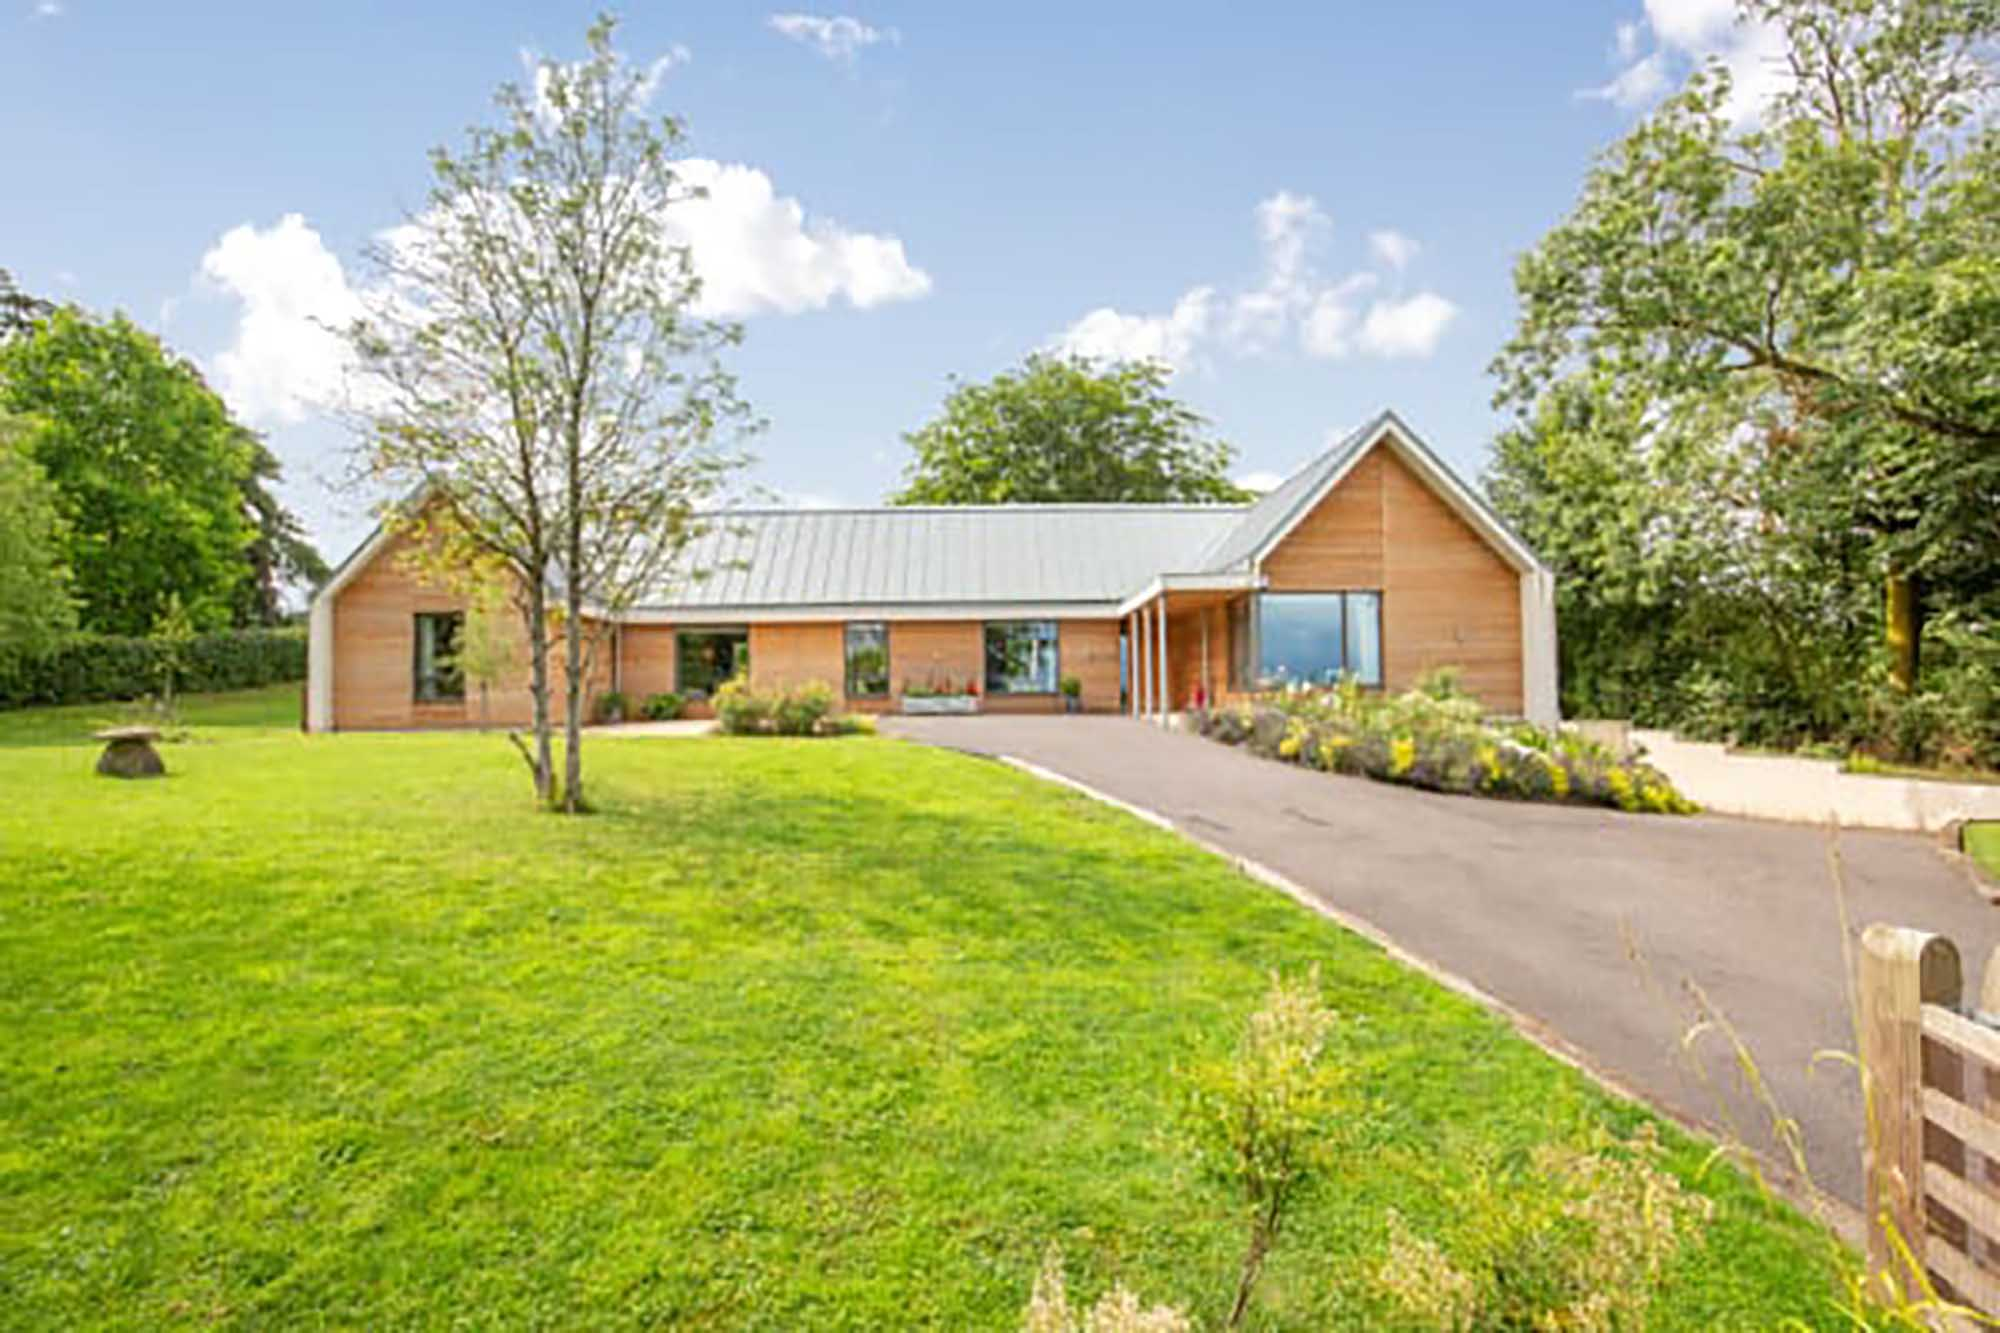 Near Frome, exceptional eco build in village setting